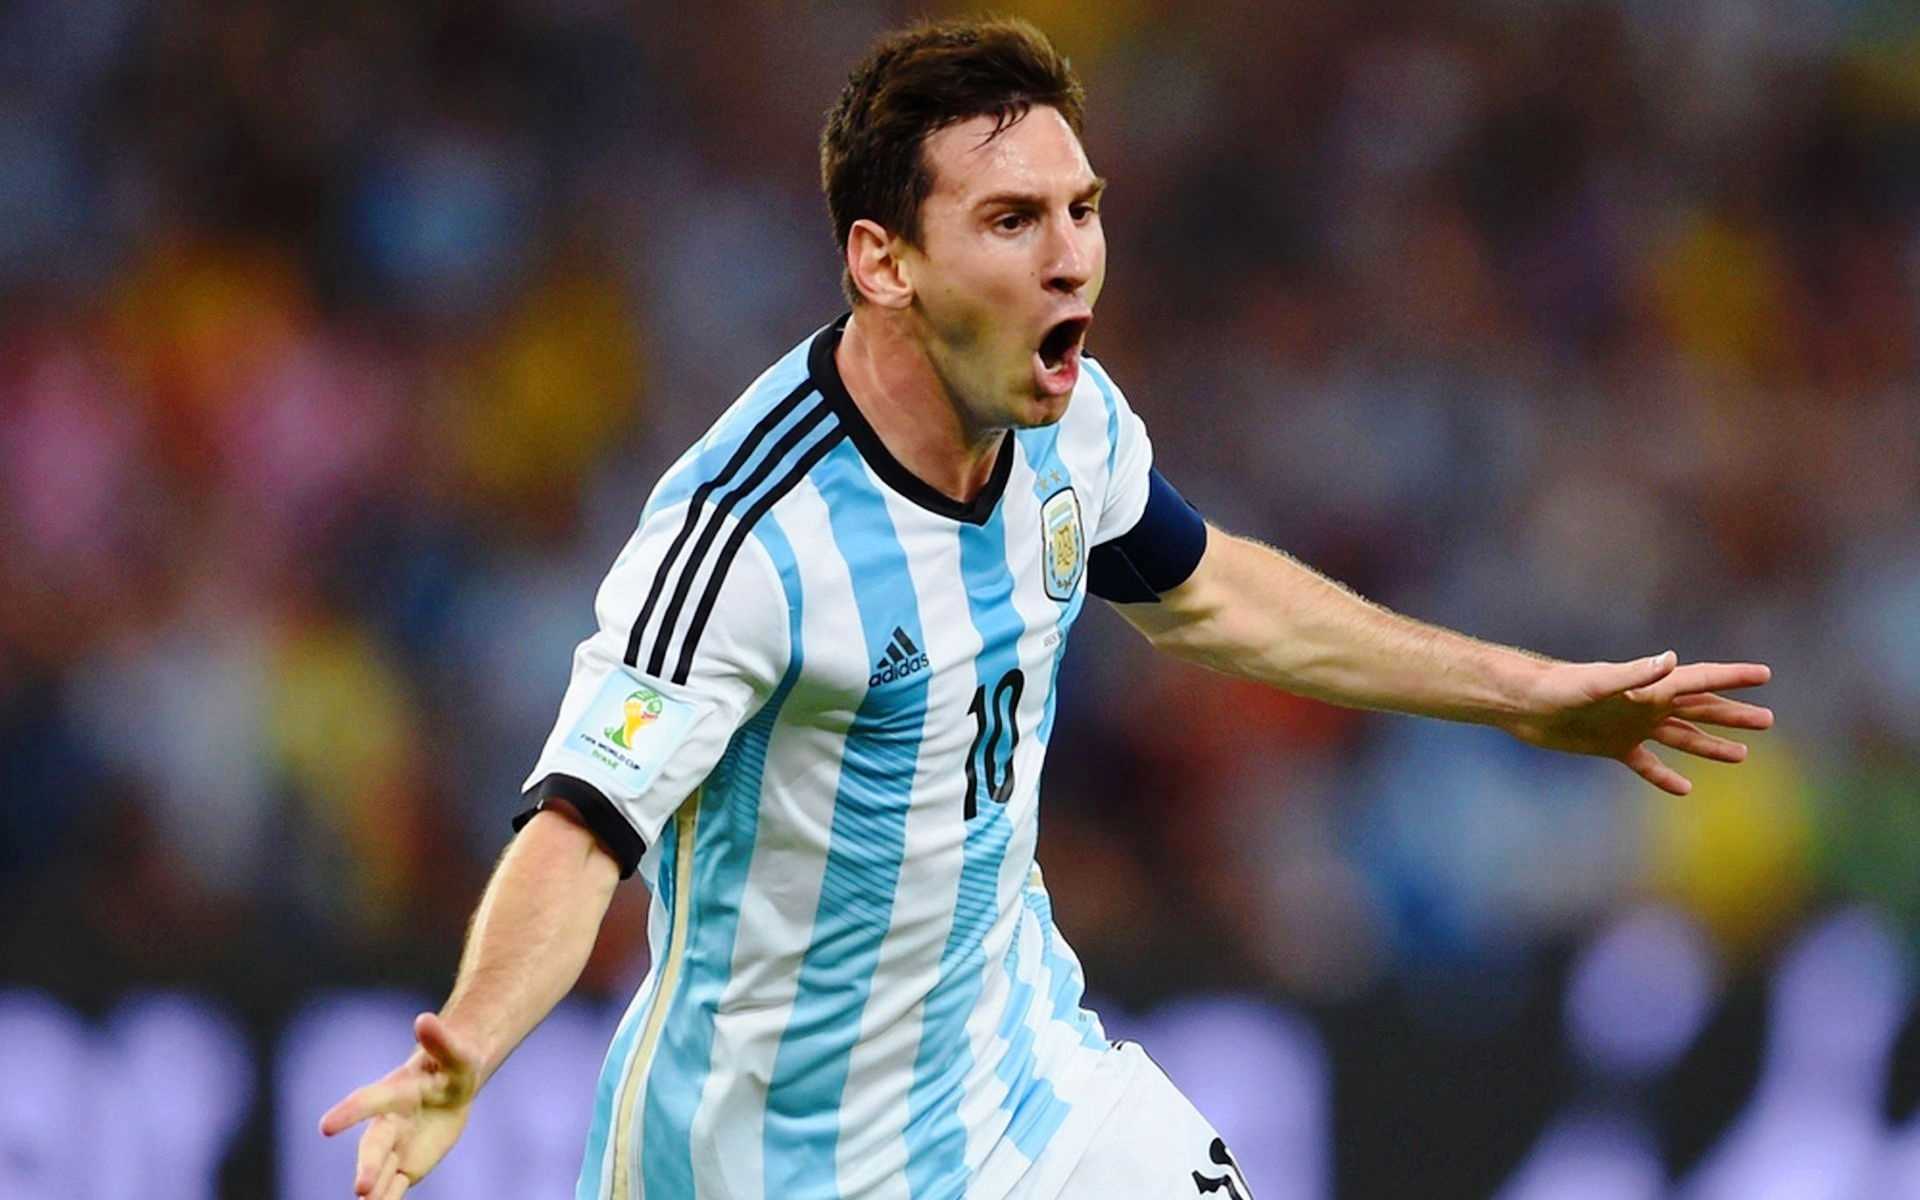 Lionel Messi Brazil World Cup 2014 Wallpapers - 1920x1200 ...